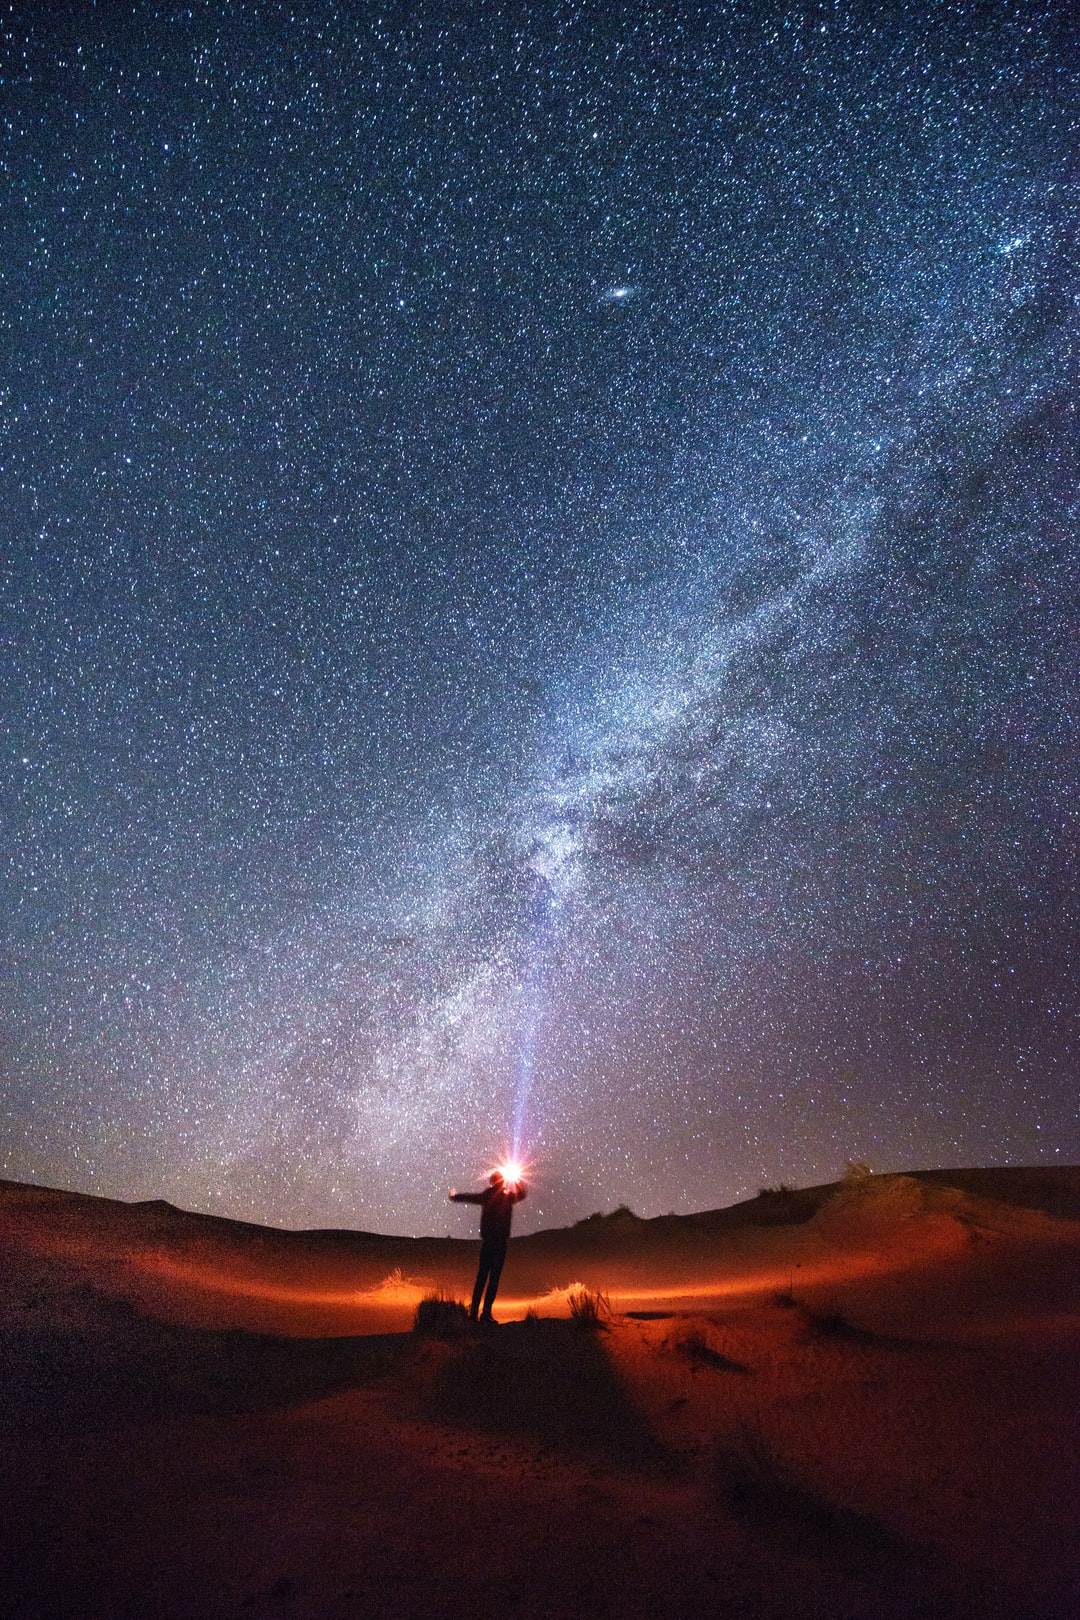 The night of the Sahara desert, the stars were in the sky